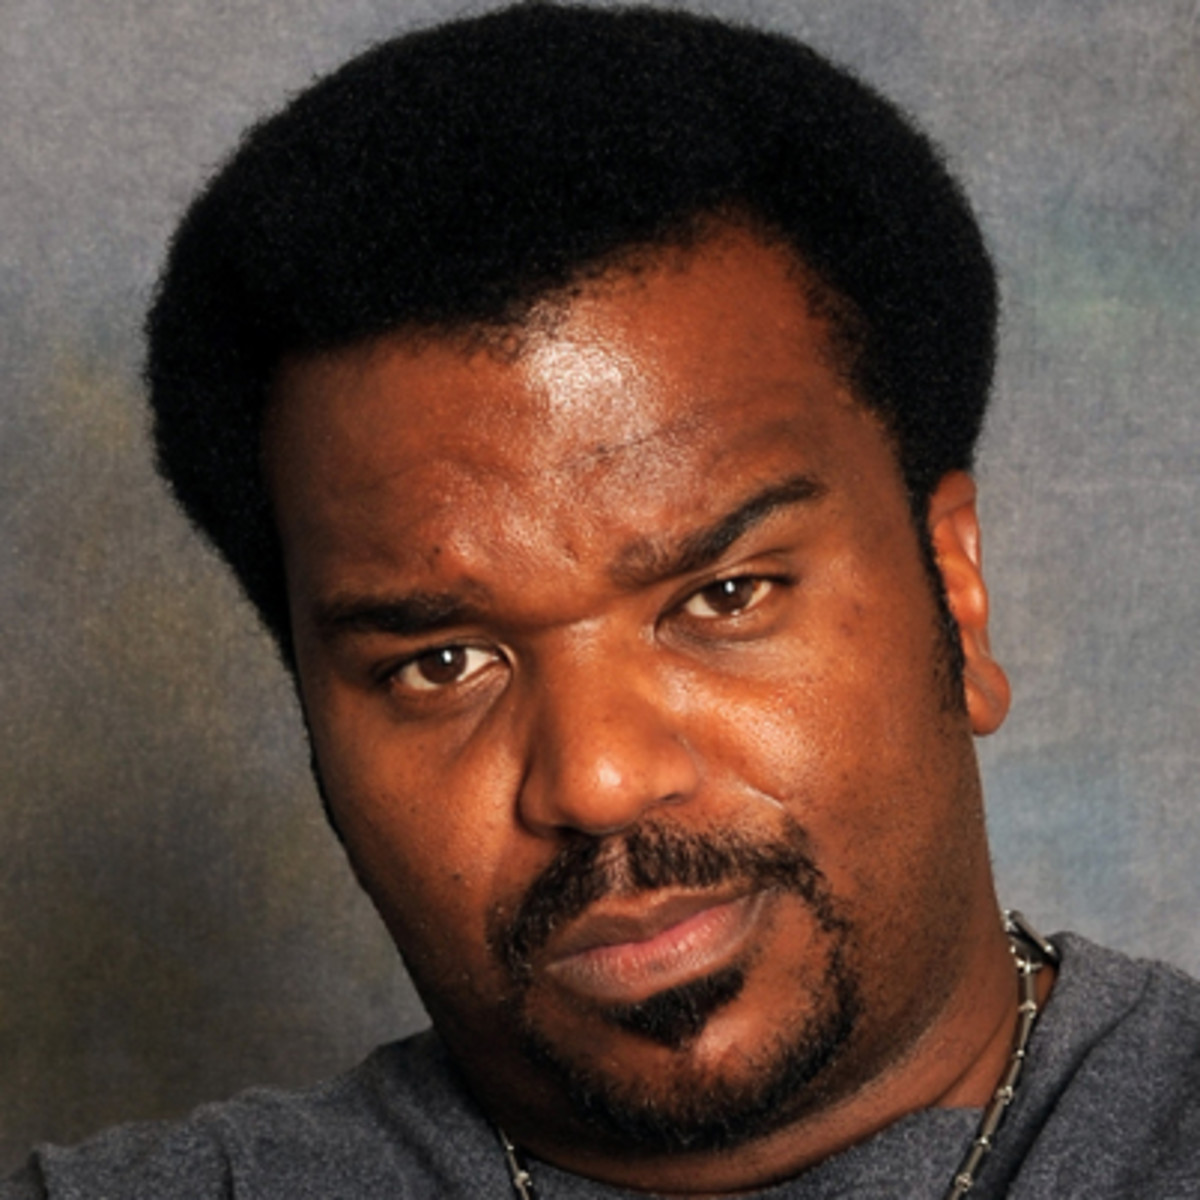 PASADENA, CA - OCTOBER 10:  Comedian Craig Robinson poses at the Pasadena Civic Auditorium on October 10, 2010 in Pasadena, California.  (Photo by Michael Schwartz/WireImage)